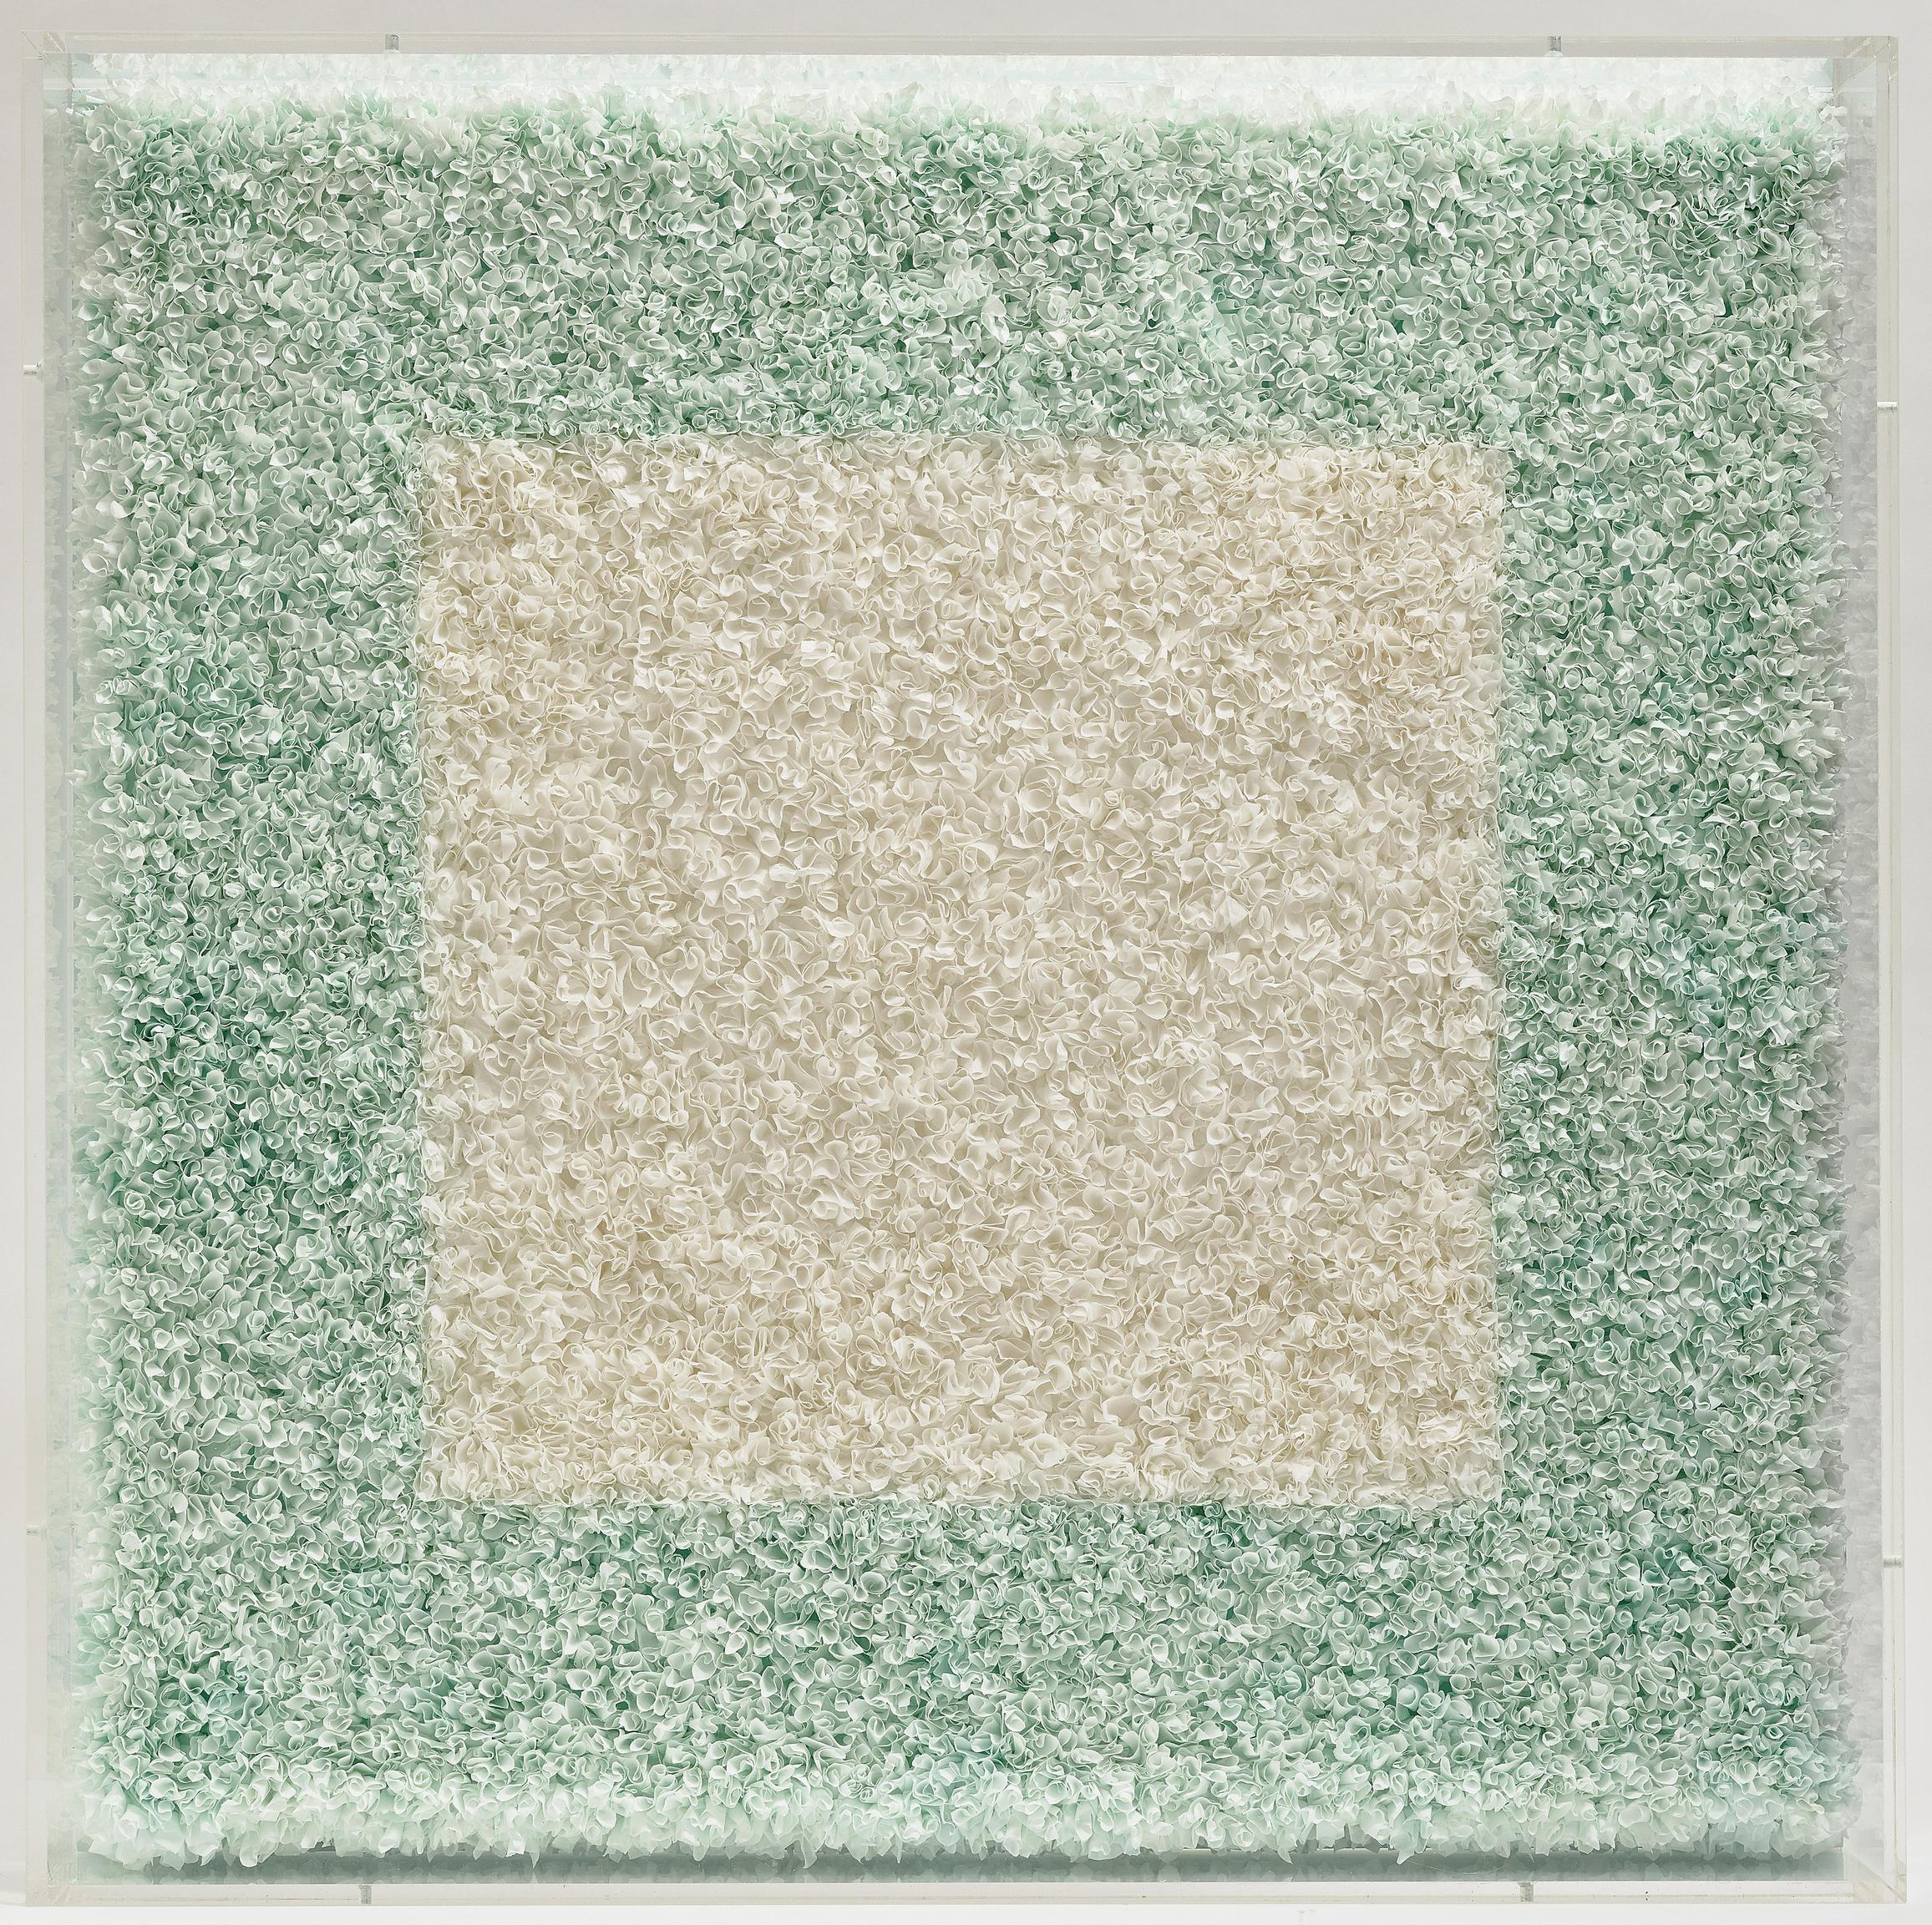 Lore Bert - Weisses Quadrat (In Turkis, Klein)/A White Square (Small, in Turquoise)-2004